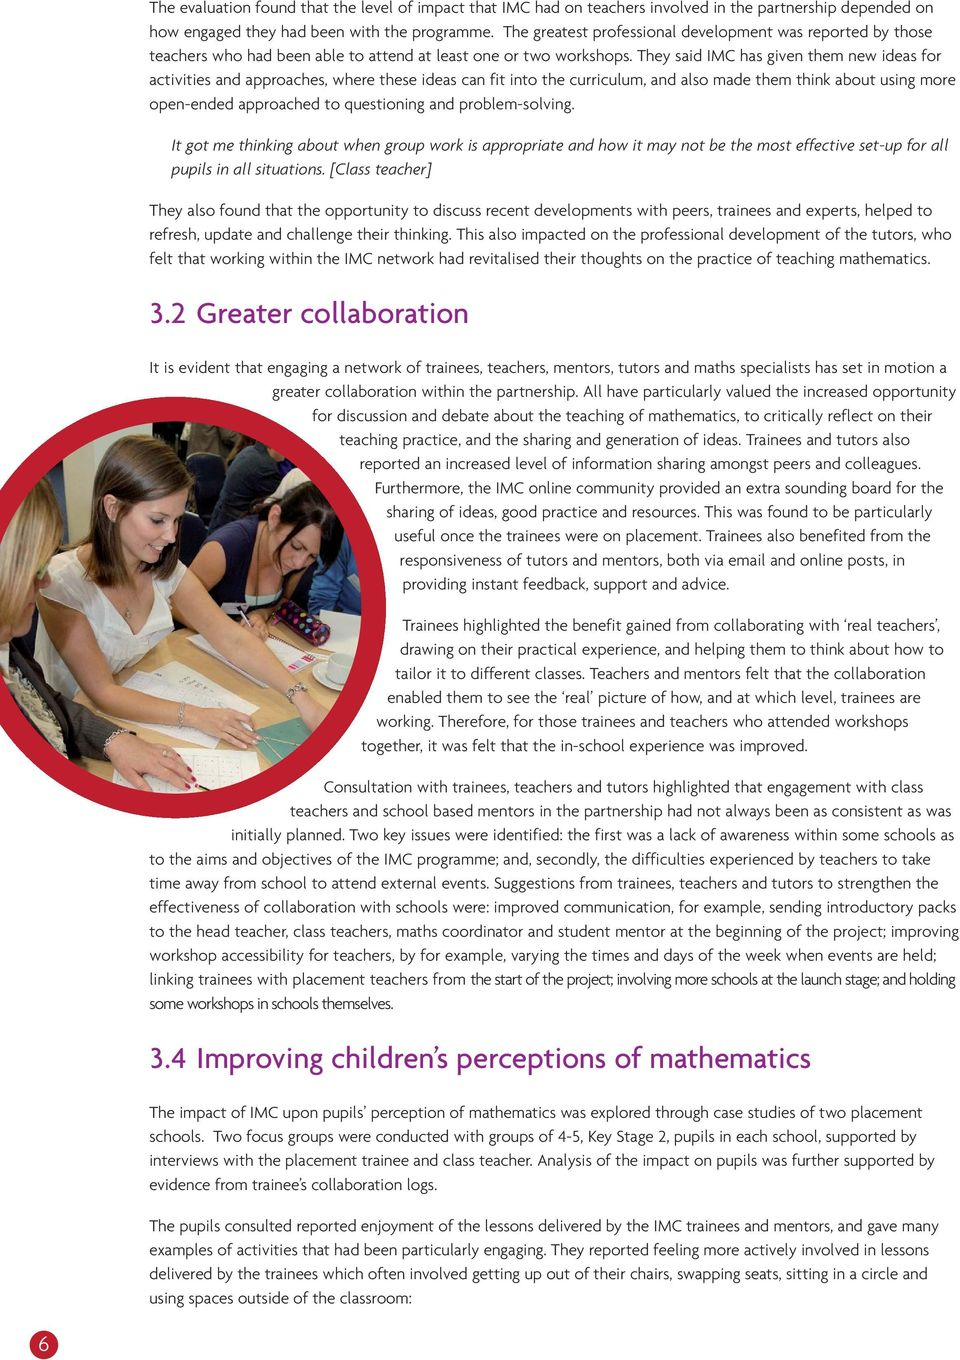 They said IMC has given them new ideas for activities and approaches, where these ideas can fit into the curriculum, and also made them think about using more open-ended approached to questioning and